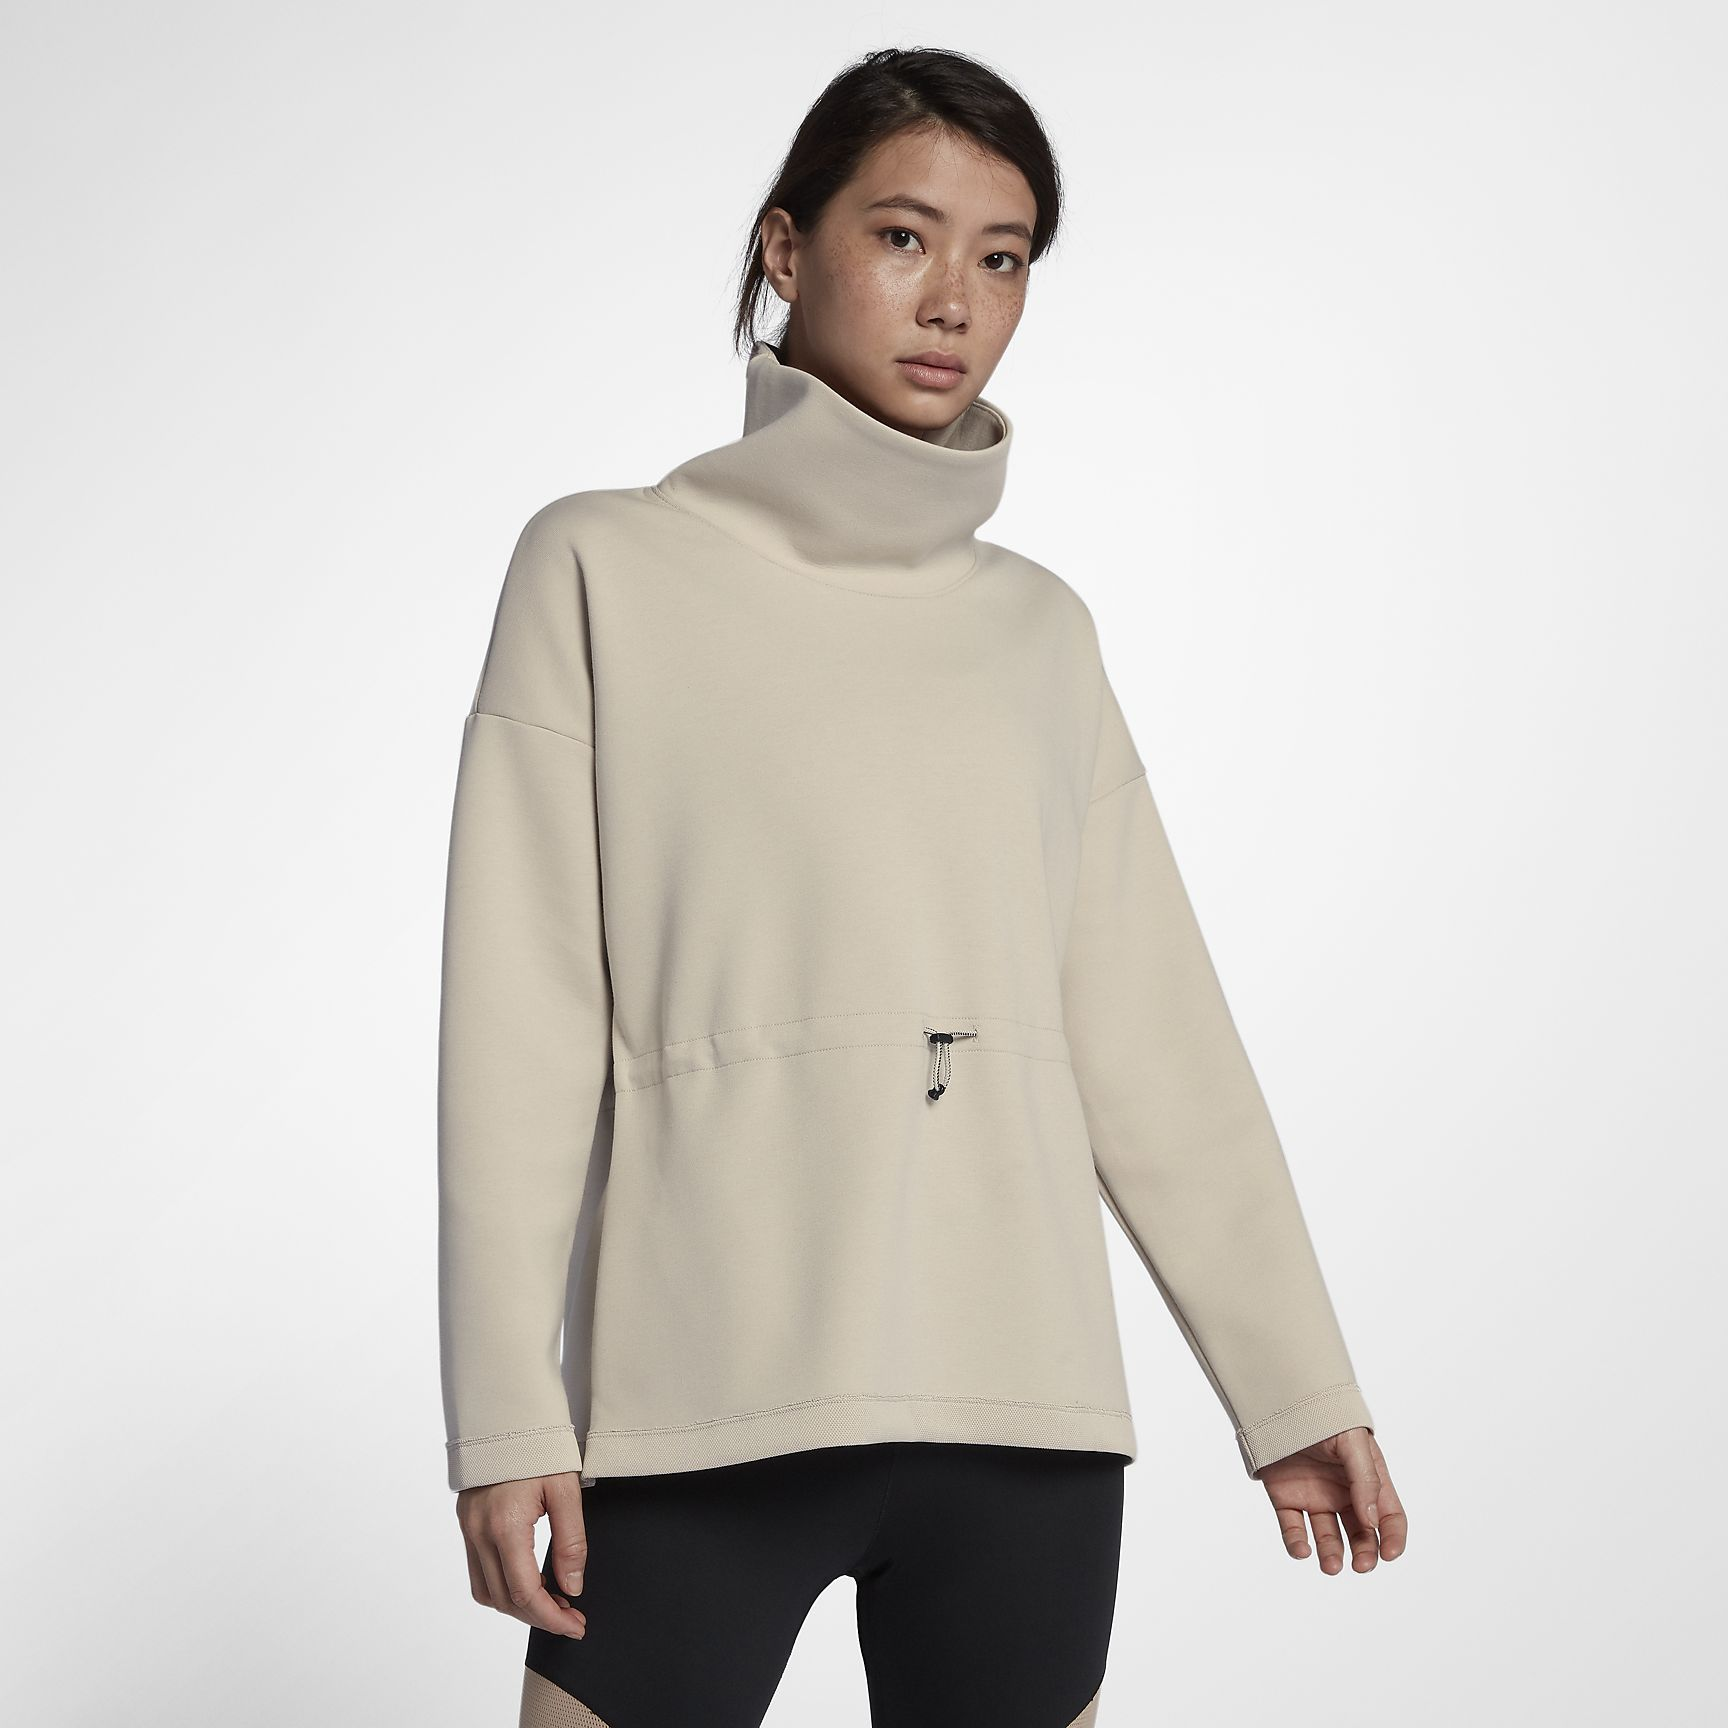 Blouses & Shirts Women Long Sleeve Slim Fit Turtle Neck Pullover High Tops Casual Hot Drilling High Collar Bottoming Shirt Fashion New Clothes New Varieties Are Introduced One After Another